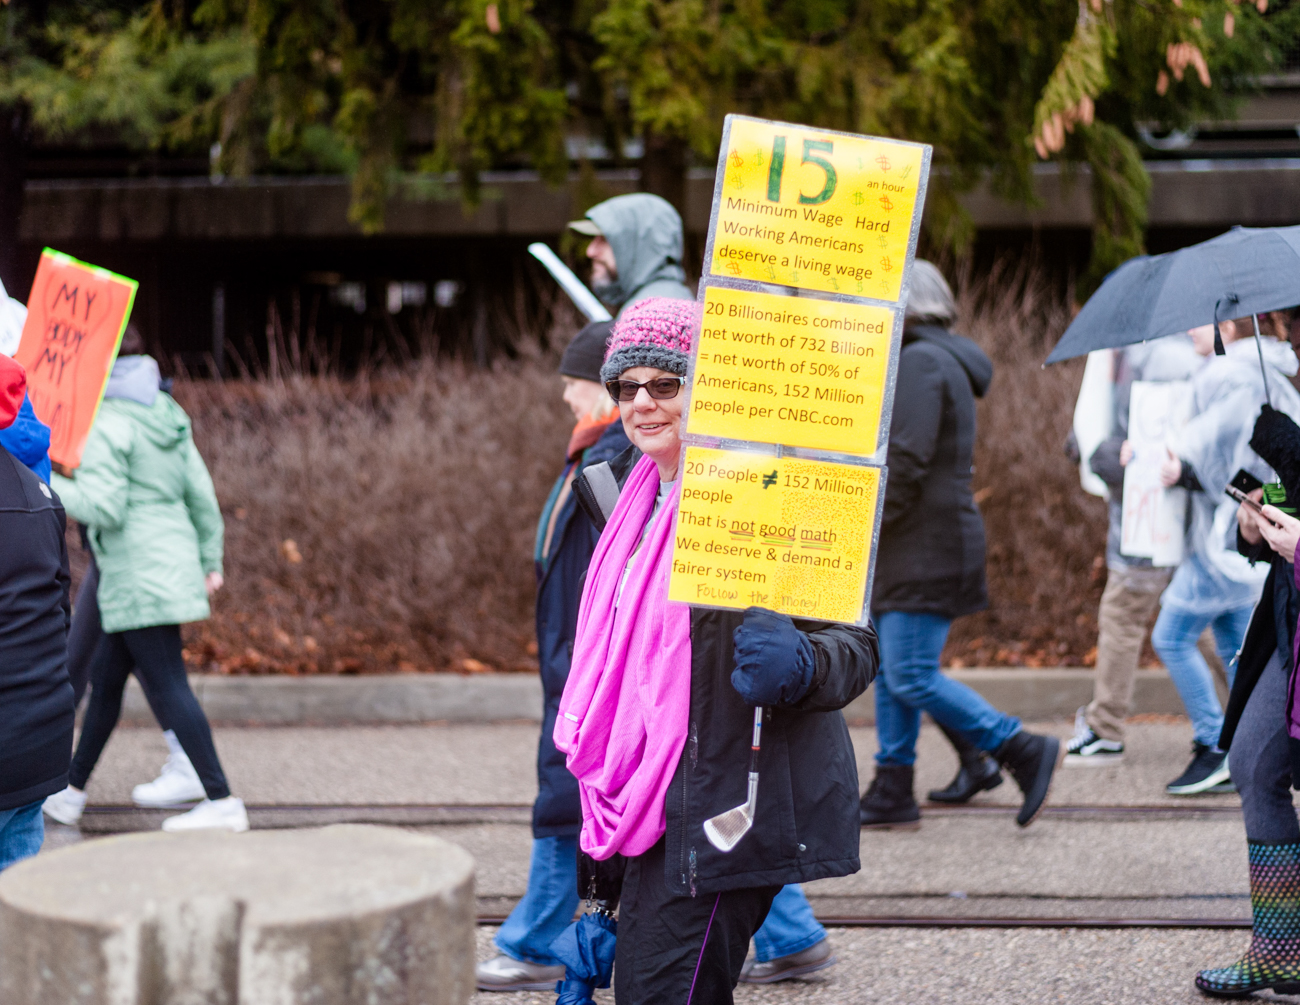 The 2020 Cincinnati Women's March, organized by activist group United We Stand, took place on Saturday, January 18. Hundreds gathered under overcast skies at Sawyer Point before marching through the streets of Downtown to protest the president as well as bring attention to issues affecting women. The original Women's March was held in January of 2017, bringing millions of people across the nation to the streets to protest. / Image: Kellie Coleman // Published: 1.19.20